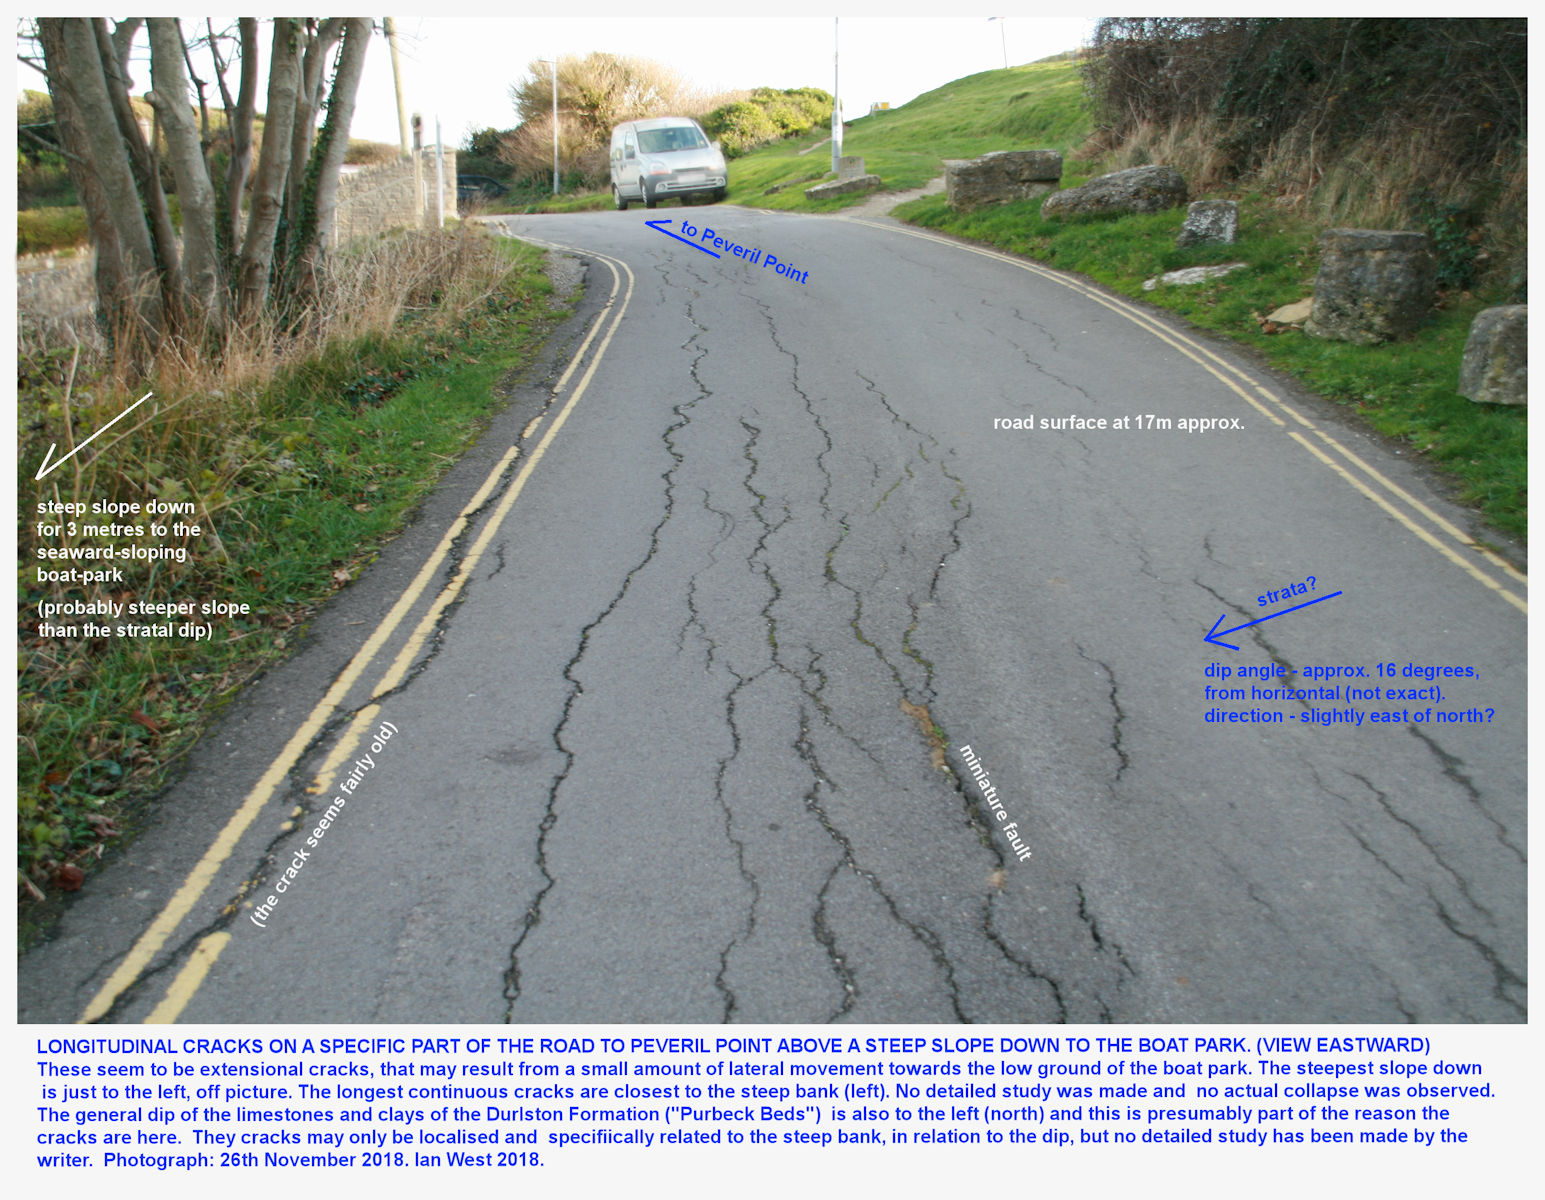 Narrow cracks in the road, apparently only occurring at a small location upslope from the eastern side of the boat park area, Peveril Point, 26th November 2018